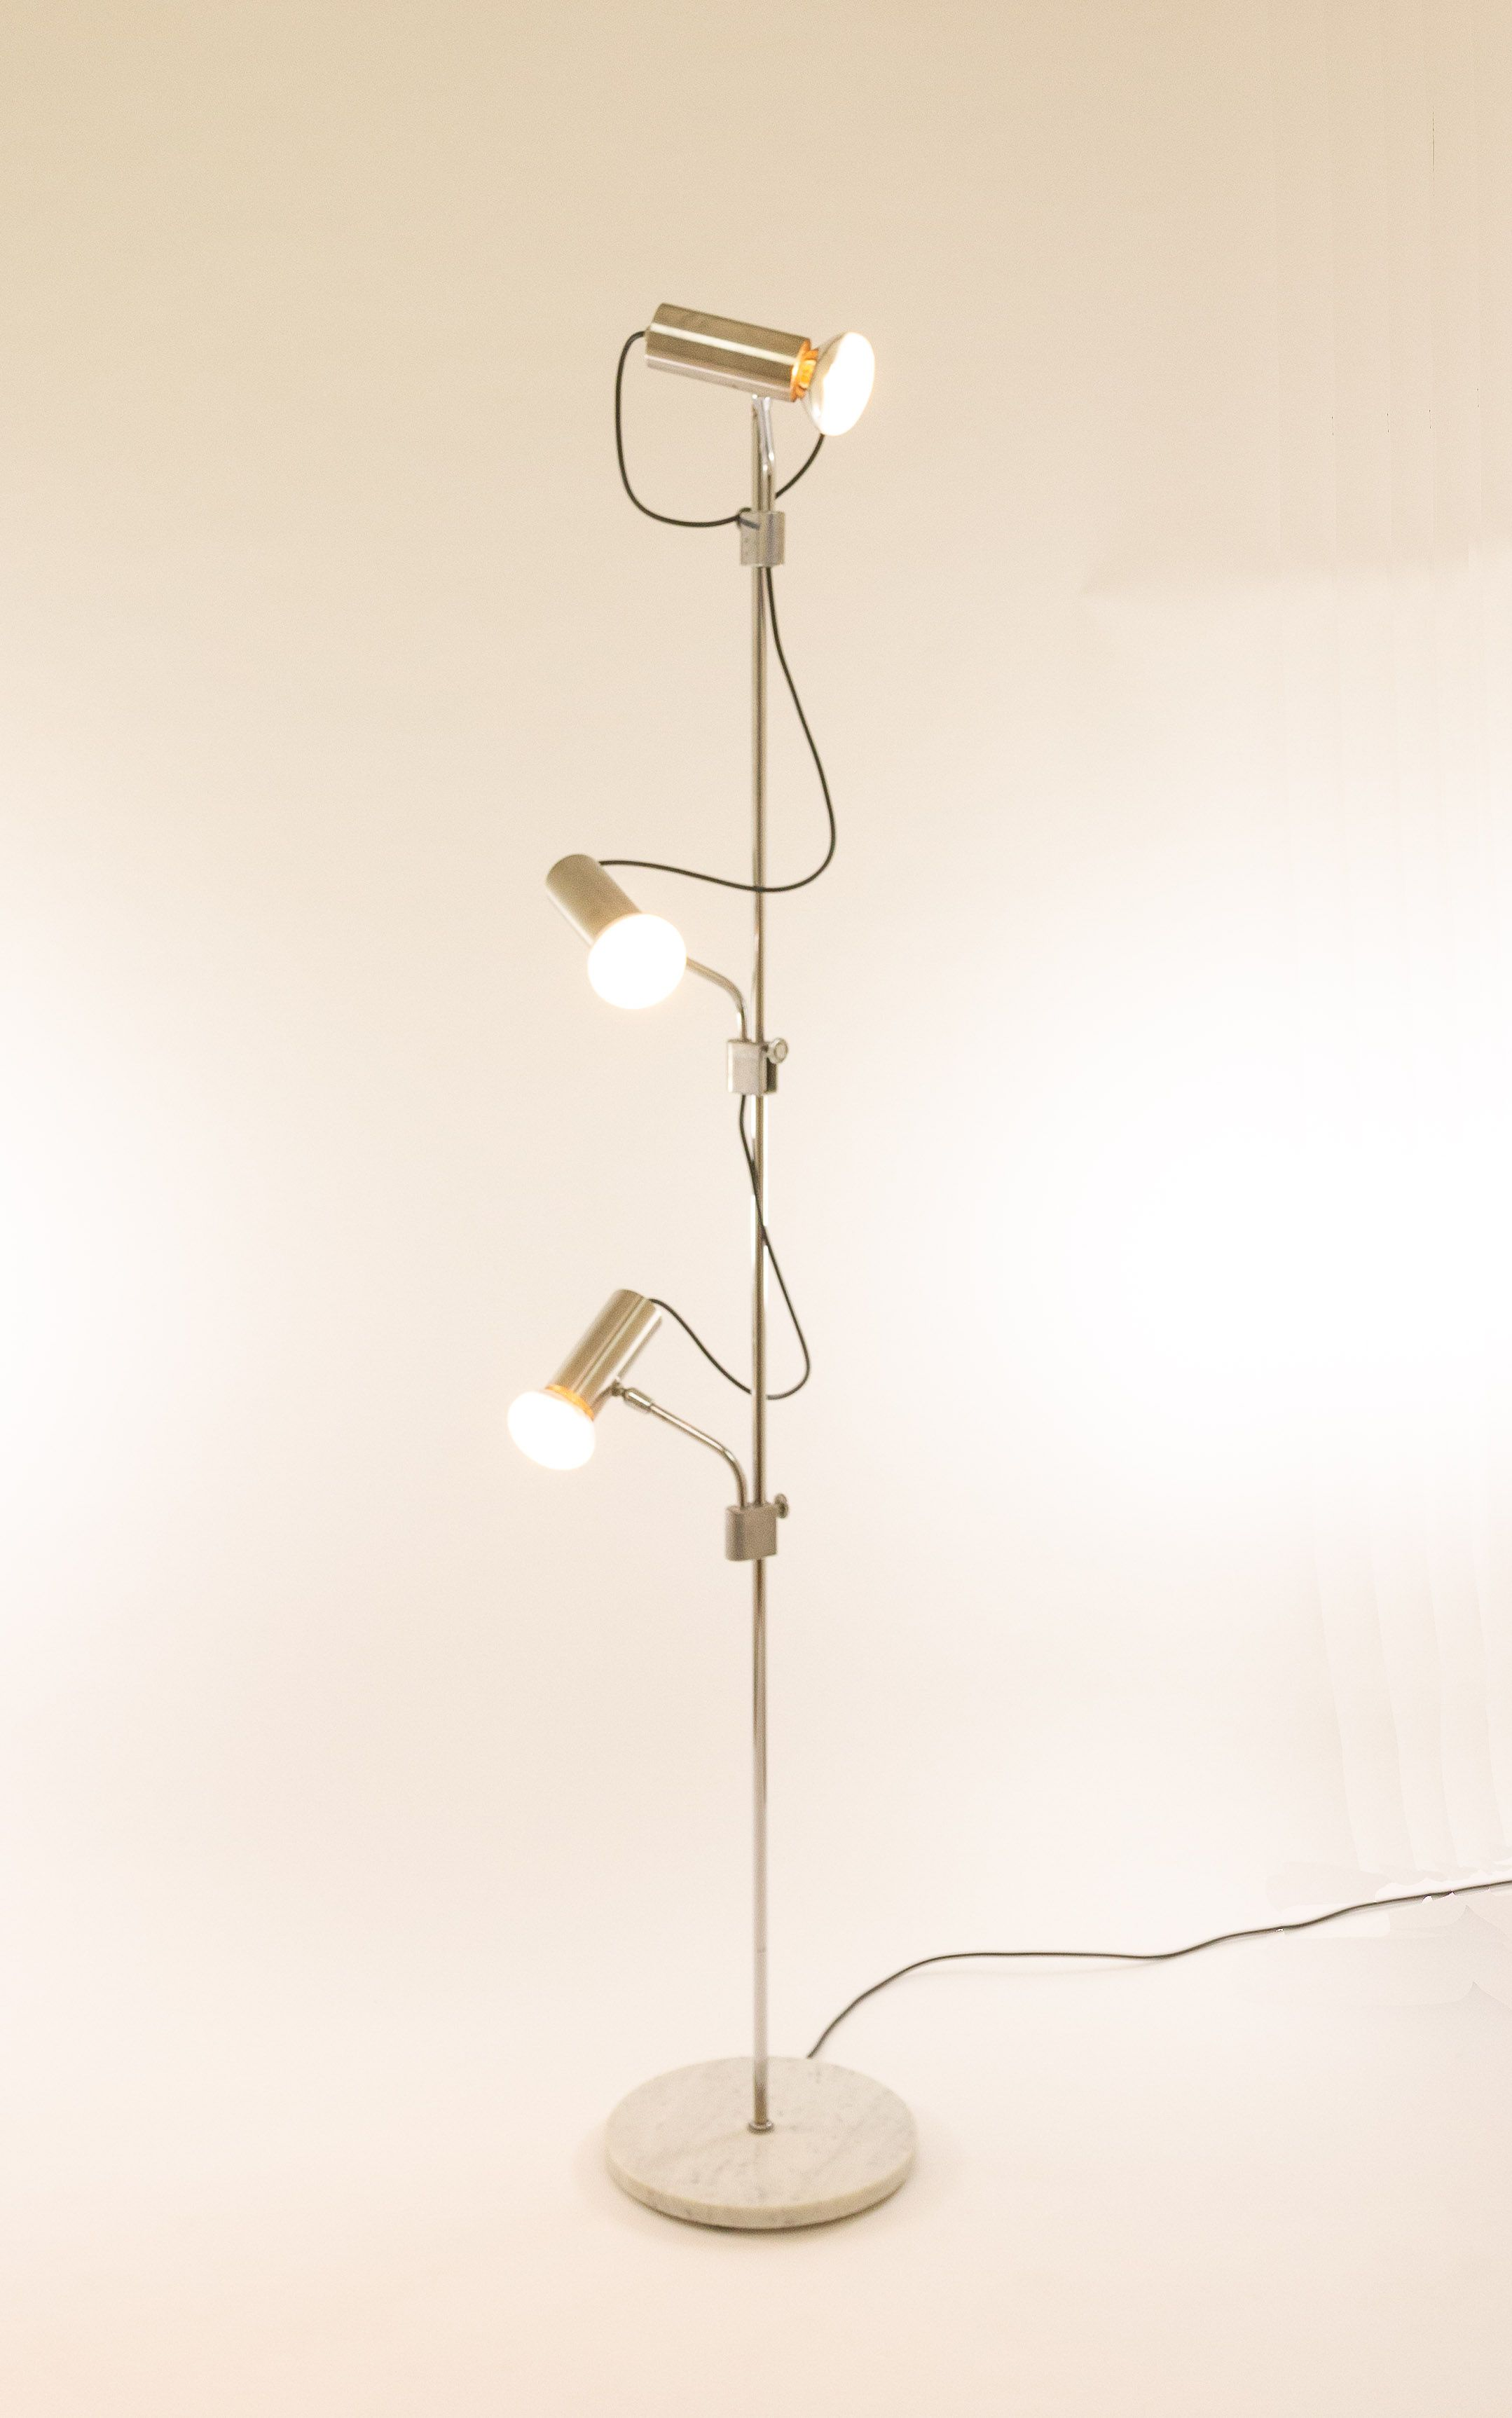 Italian Chrome Floor Lamp With Three Spots And A Marble Base In 2020 Floor Lamp Lamp Chrome Floor Lamps